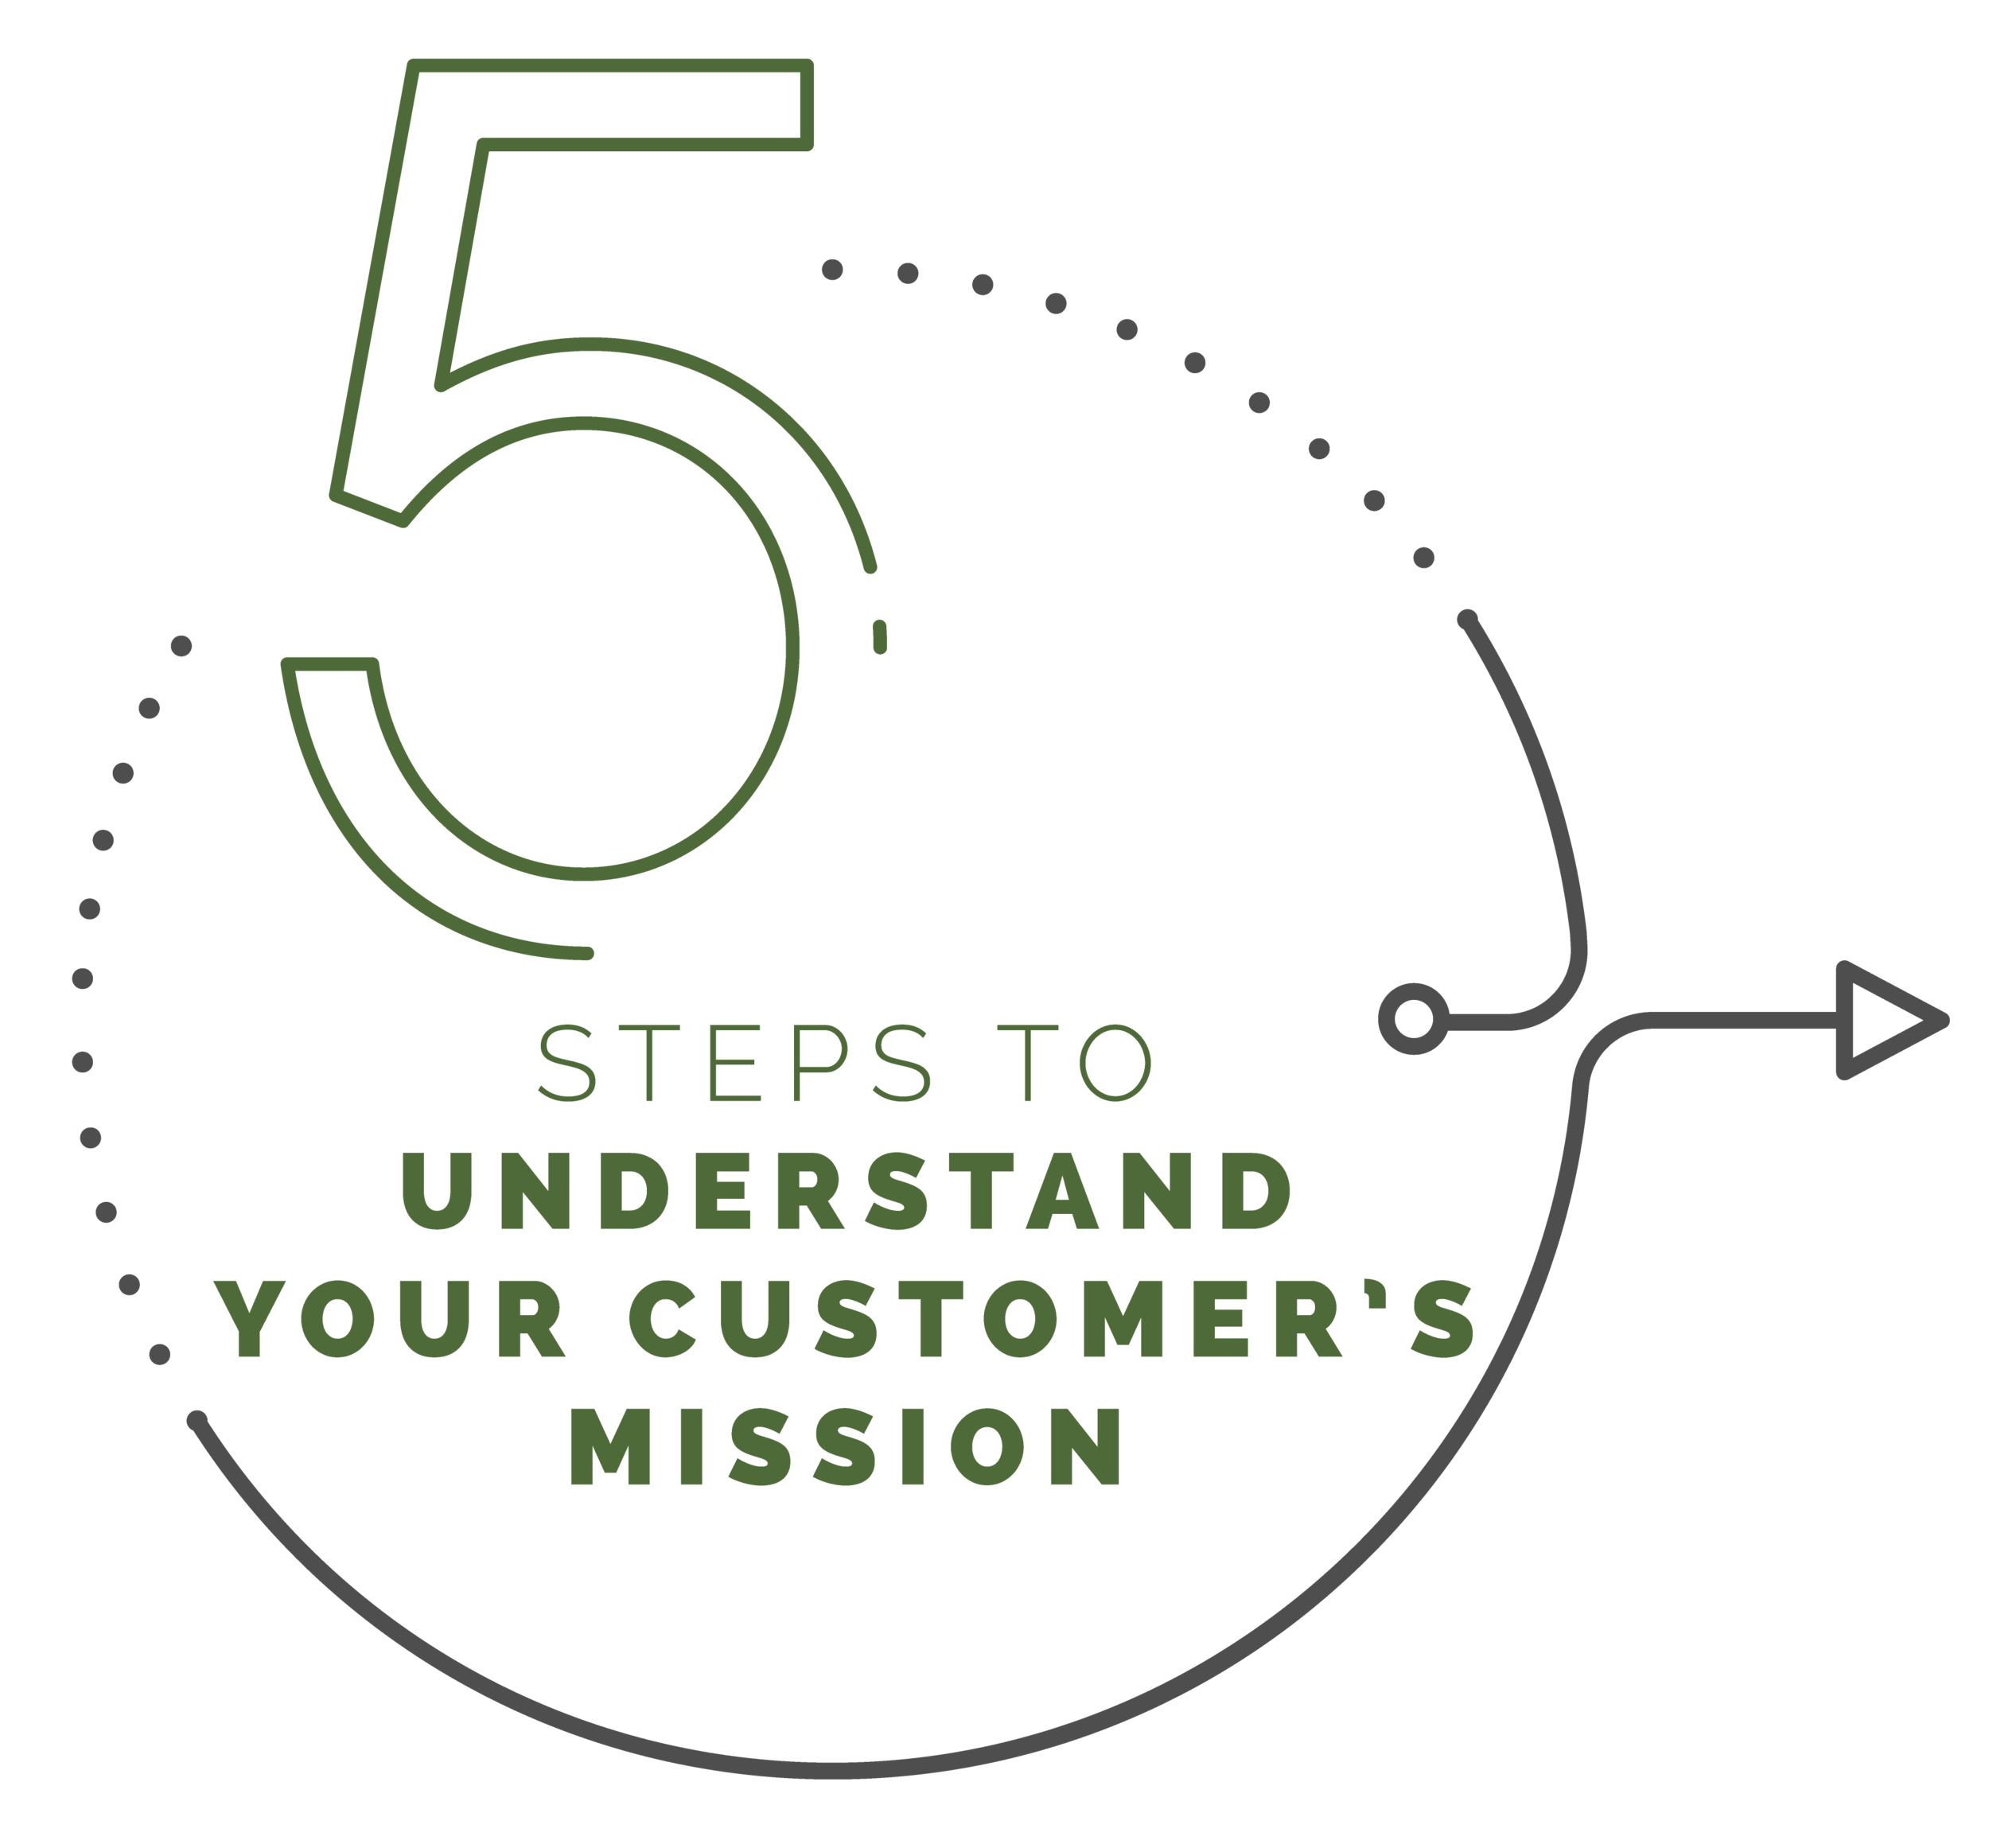 5 steps to understand your customer's mission.